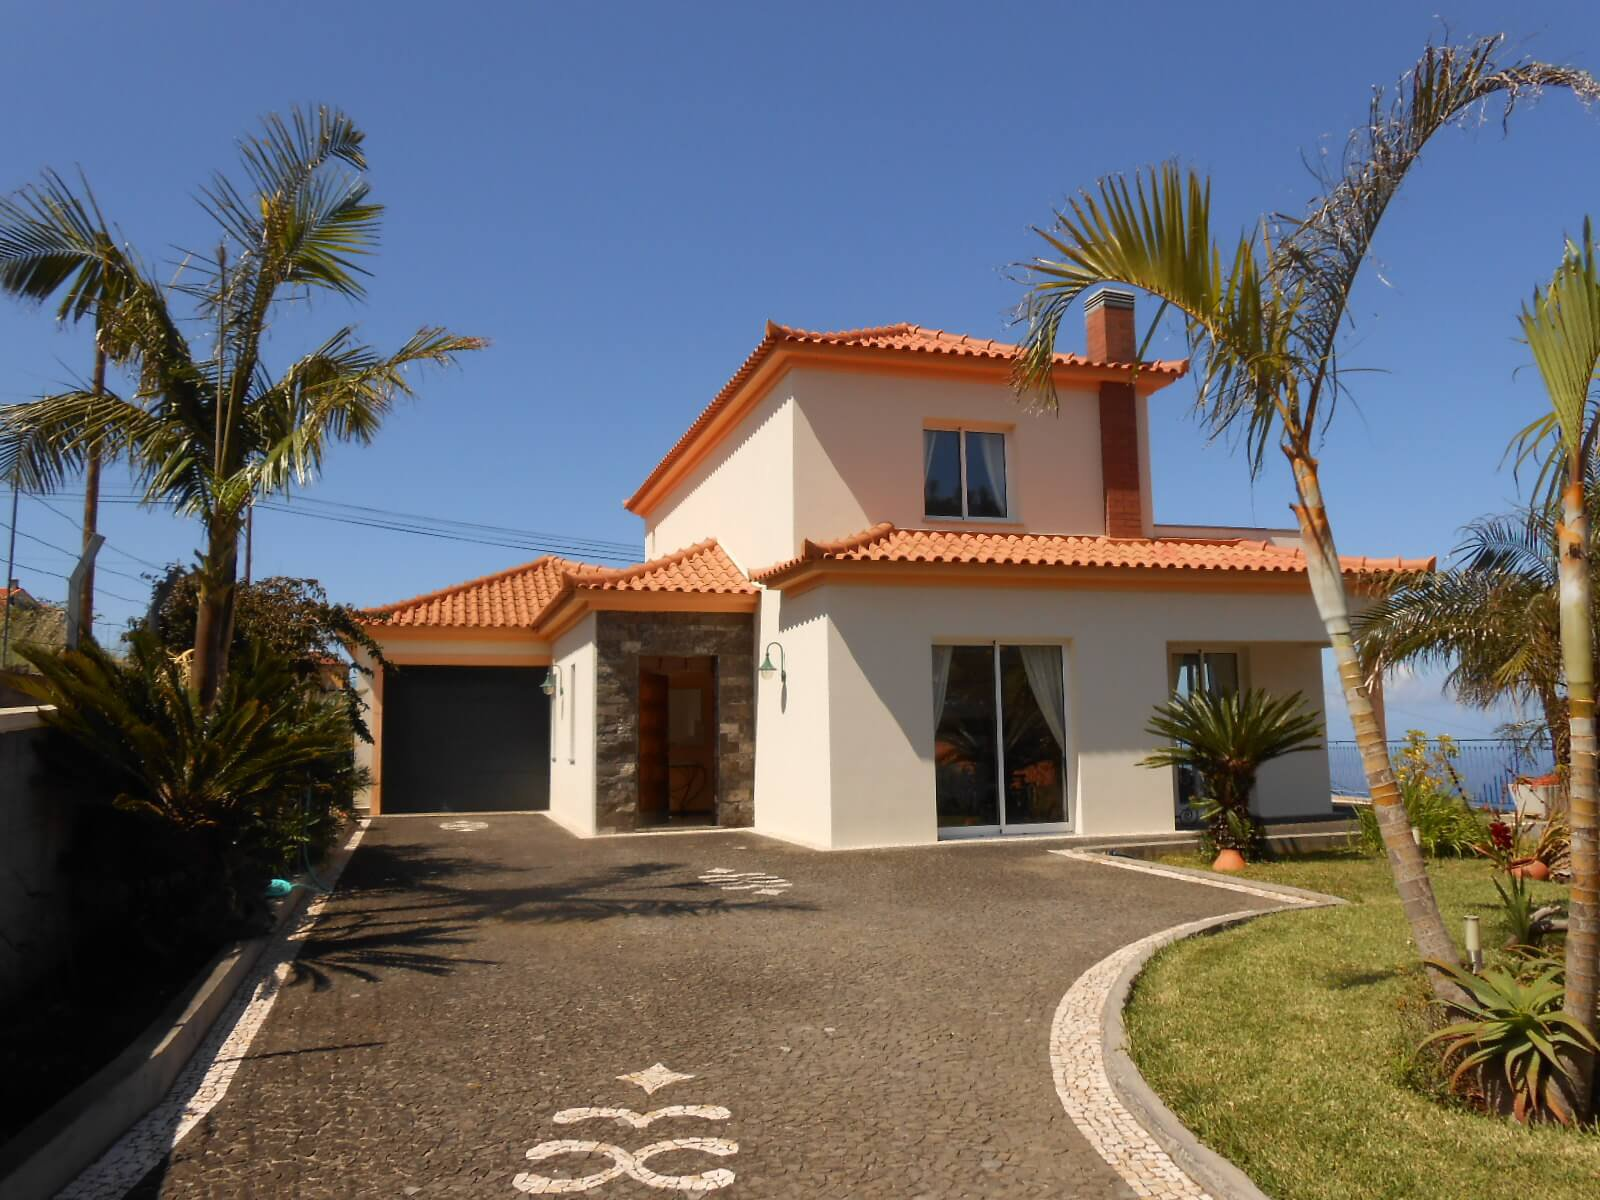 Superb T3 House of 190 m2 on 500 m2 of Land with an Amazing Ocean View. Calheta